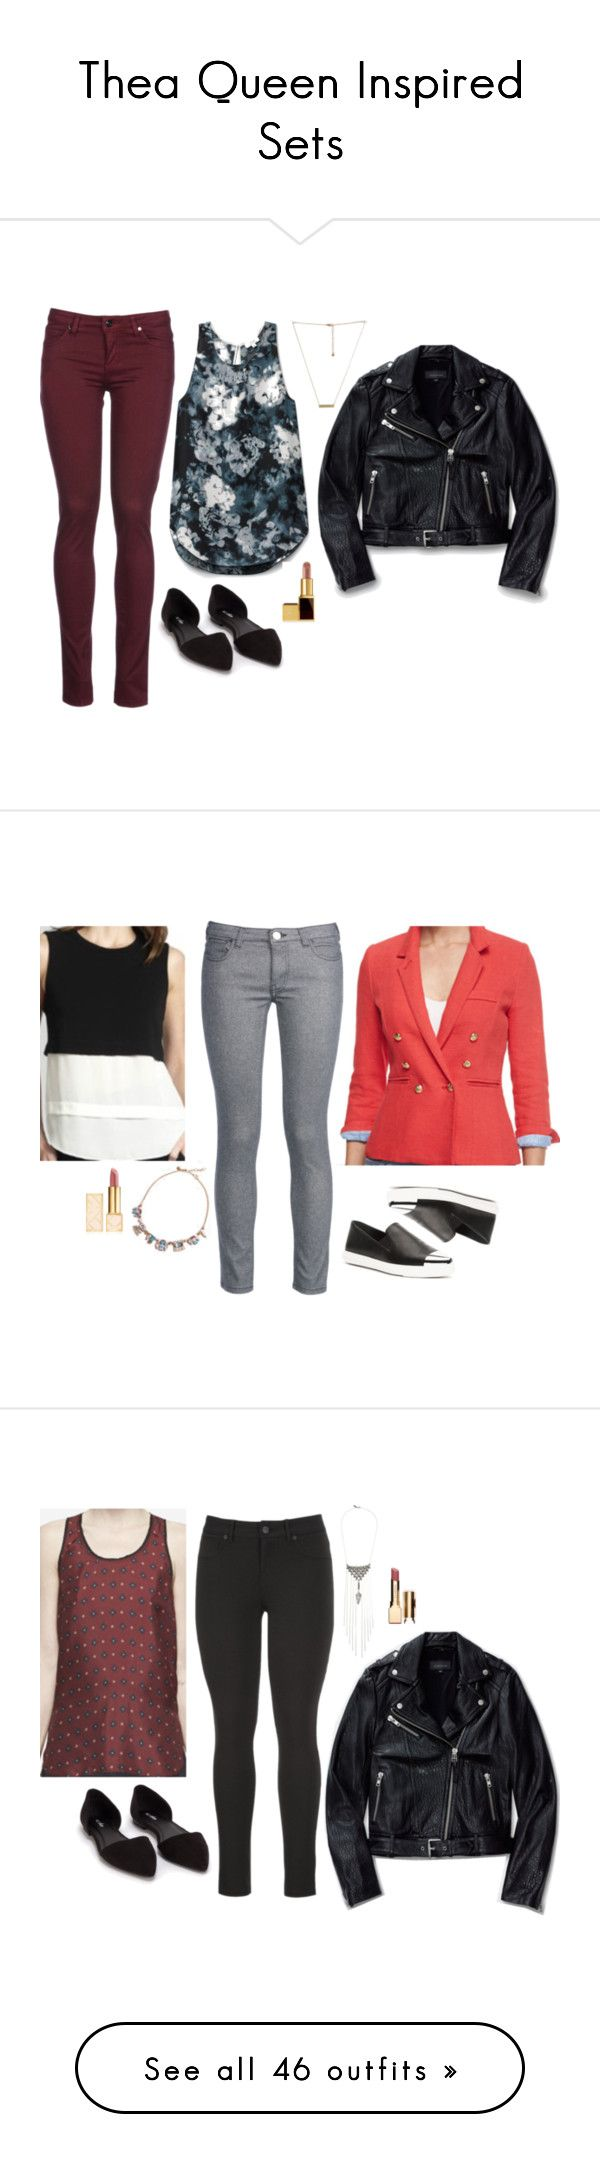 """""""Thea Queen Inspired Sets"""" by daniellakresovic ❤ liked on Polyvore featuring Mackage, 8, Nly Shoes, Tom Ford, A.L.C., George J. Love, Tory Burch, maurices, Clarins and T By Alexander Wang"""